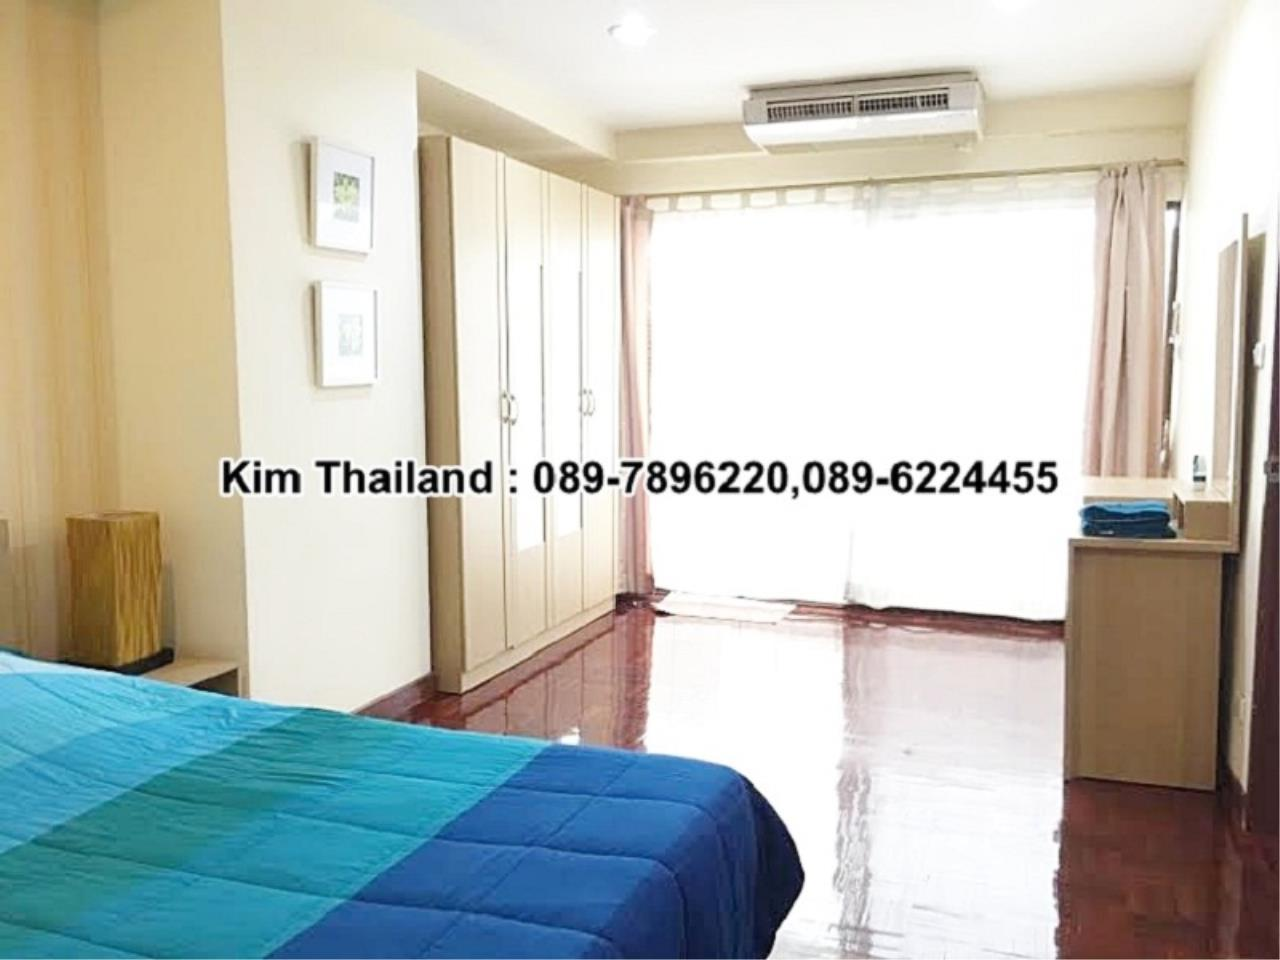 BKKcondorental Agency's For rent, Condo Saranjai Mansion. Area 63 sq.m. 1 bedroom. Rent 20,000baht/month 12